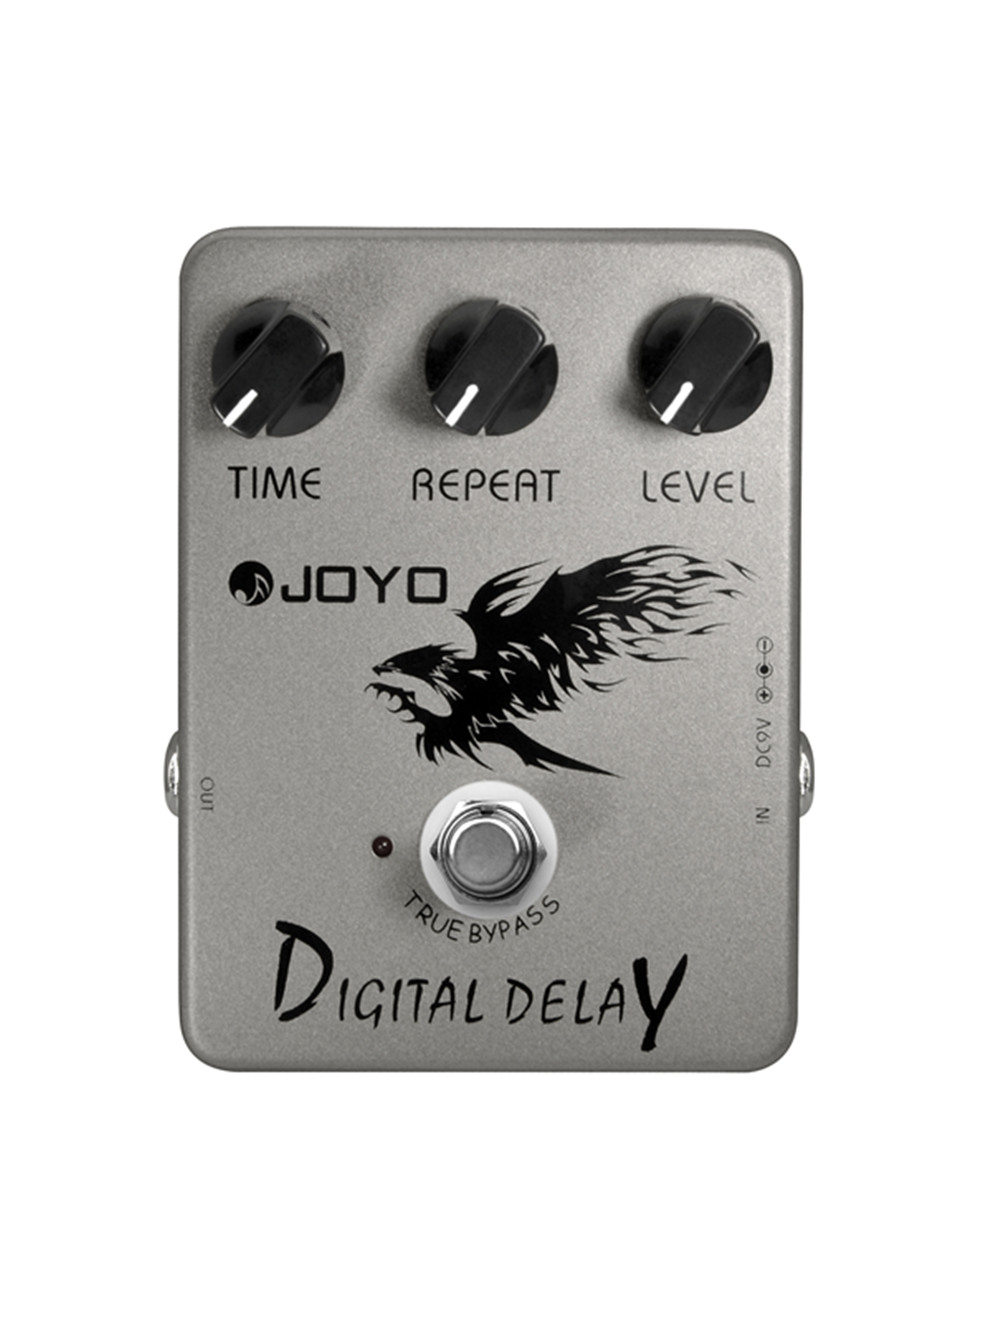 Joyo JF-08 Digital Delay Guitar Effect Pedal Delay Stompbox 25ms~600ms Delay Time Embellish Warm And Glossy True Bypass